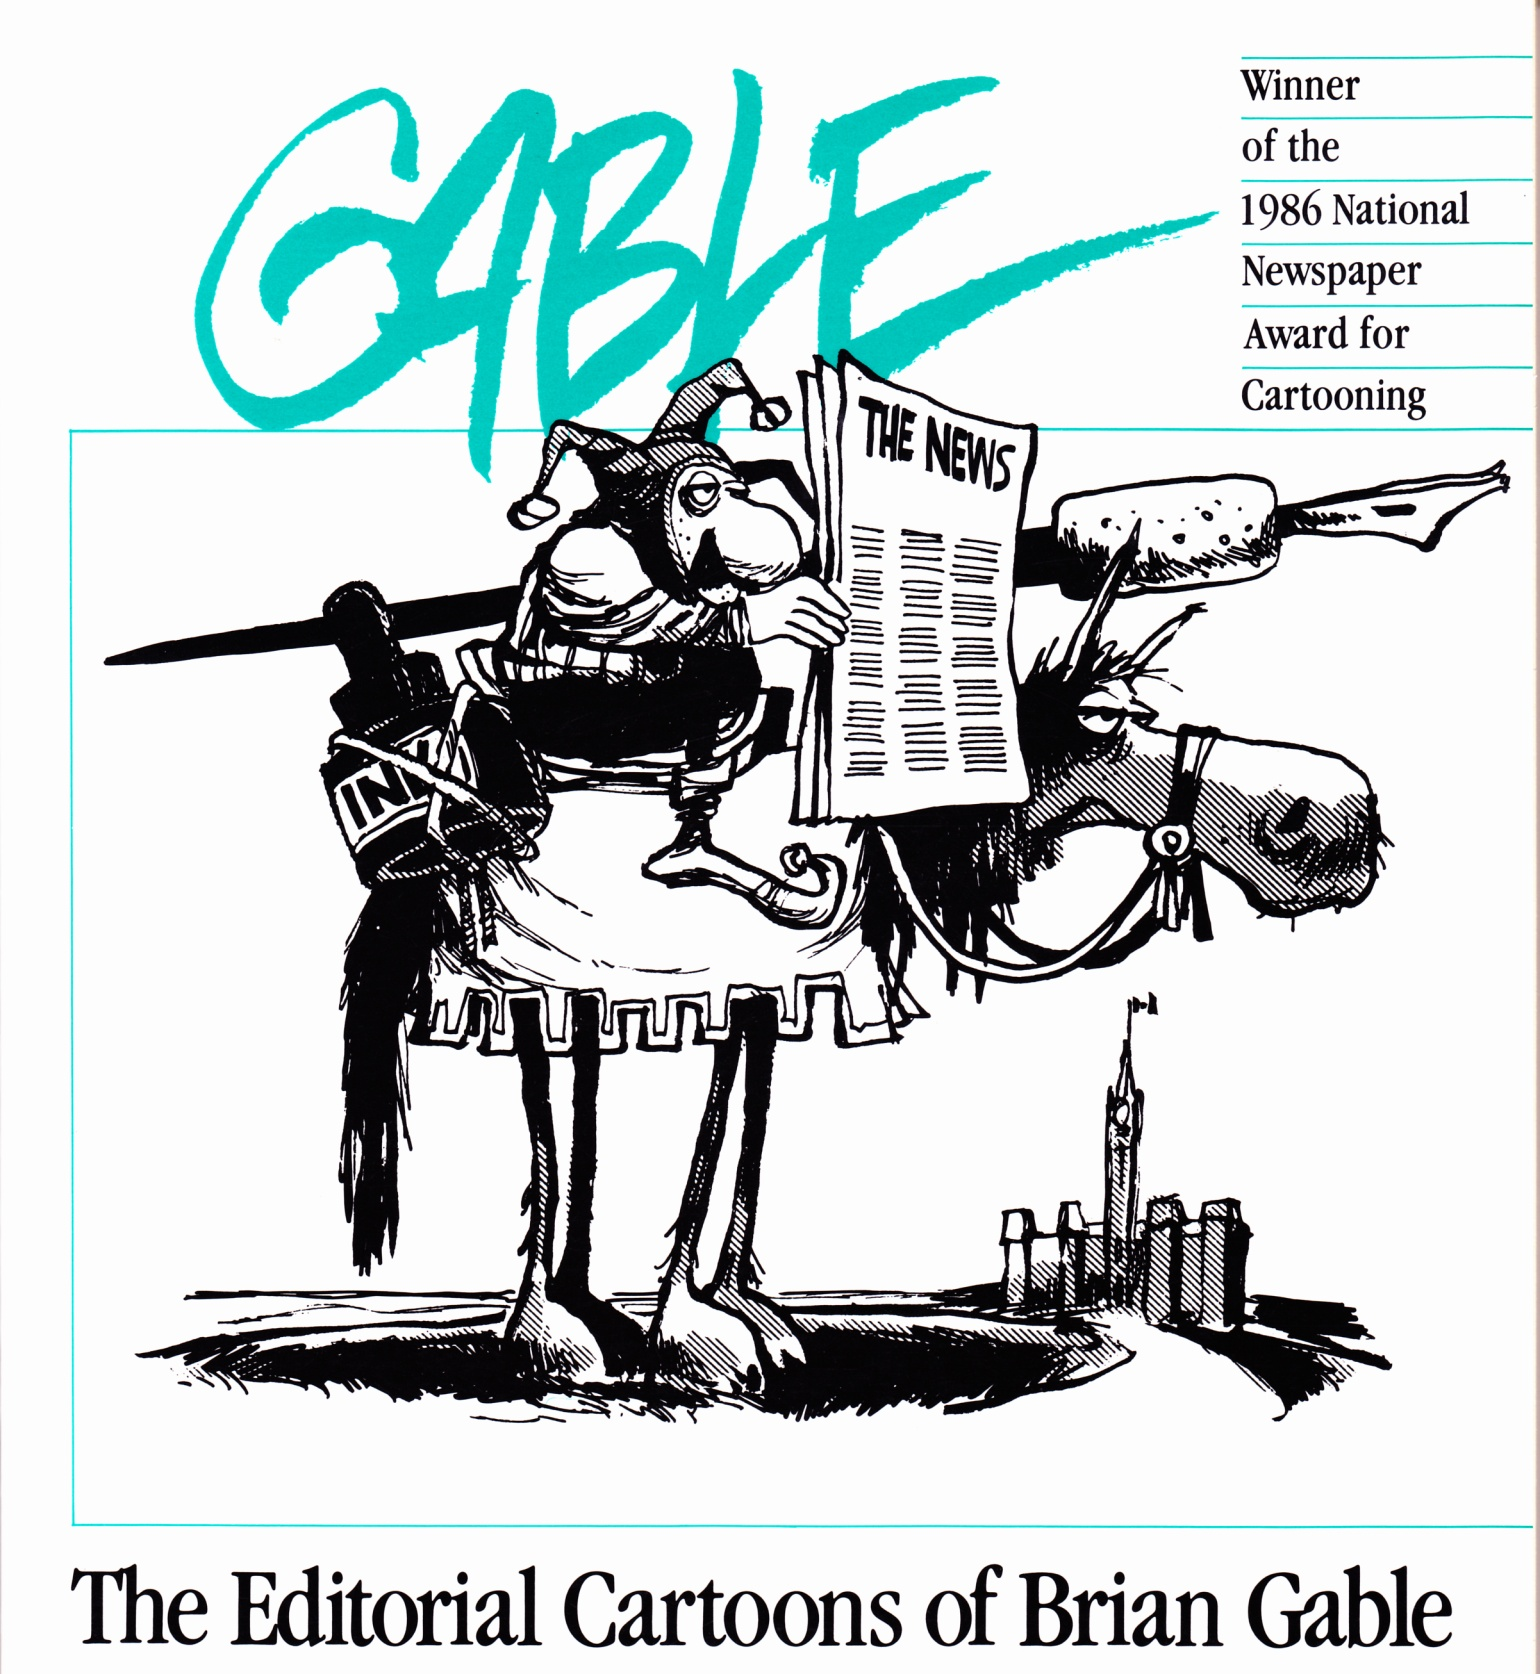 C:\Users\Robert\Documents\CARTOONING ILLUSTRATION ANIMATION\IMAGE BY CARTOONIST\G\GABLE Brian, Gable, The Editorial Cartoons, fc.jpg